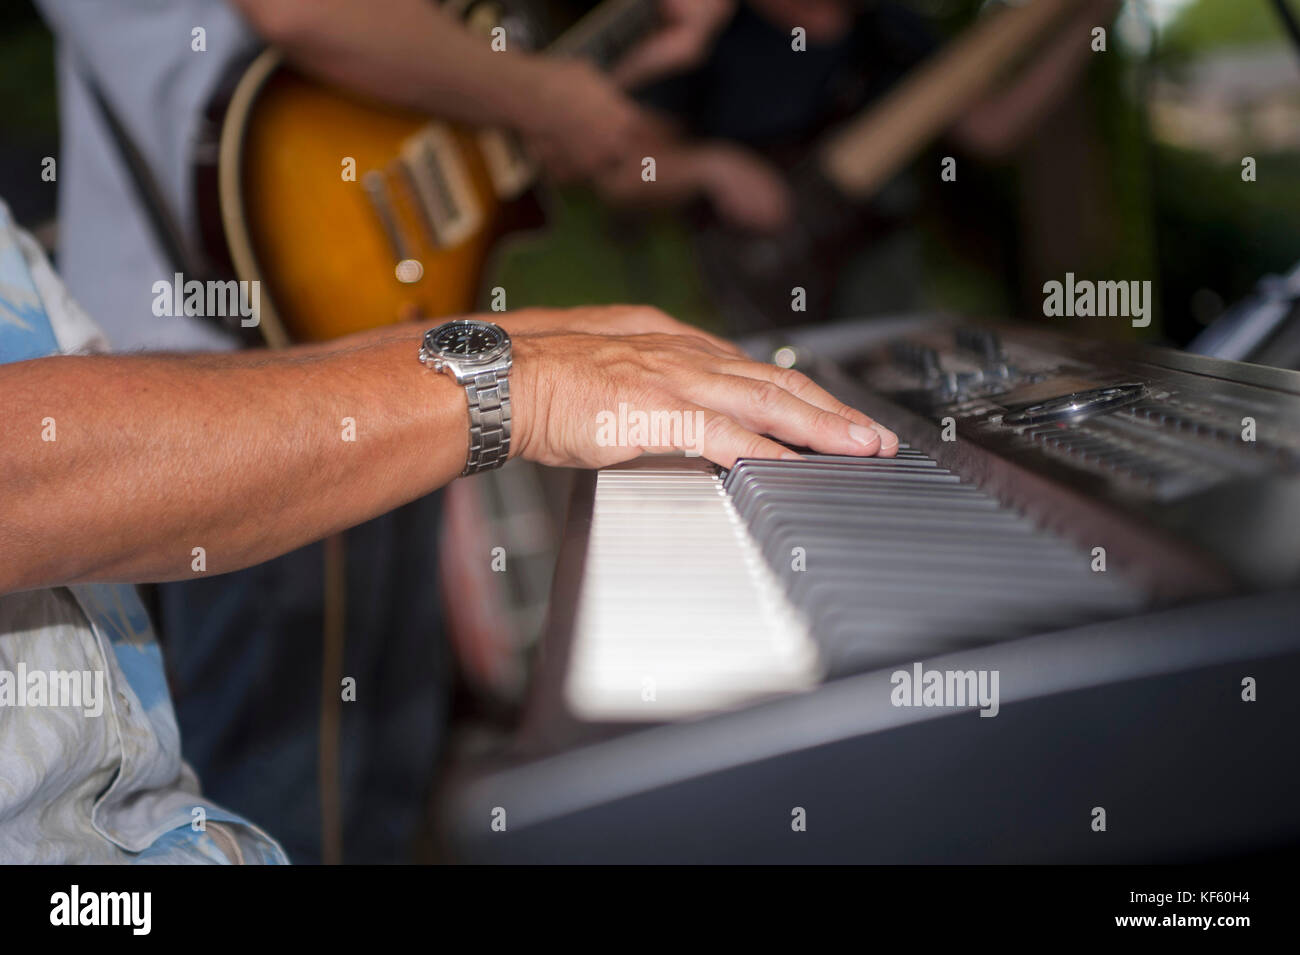 Musician's hands playing electric piano - Stock Image